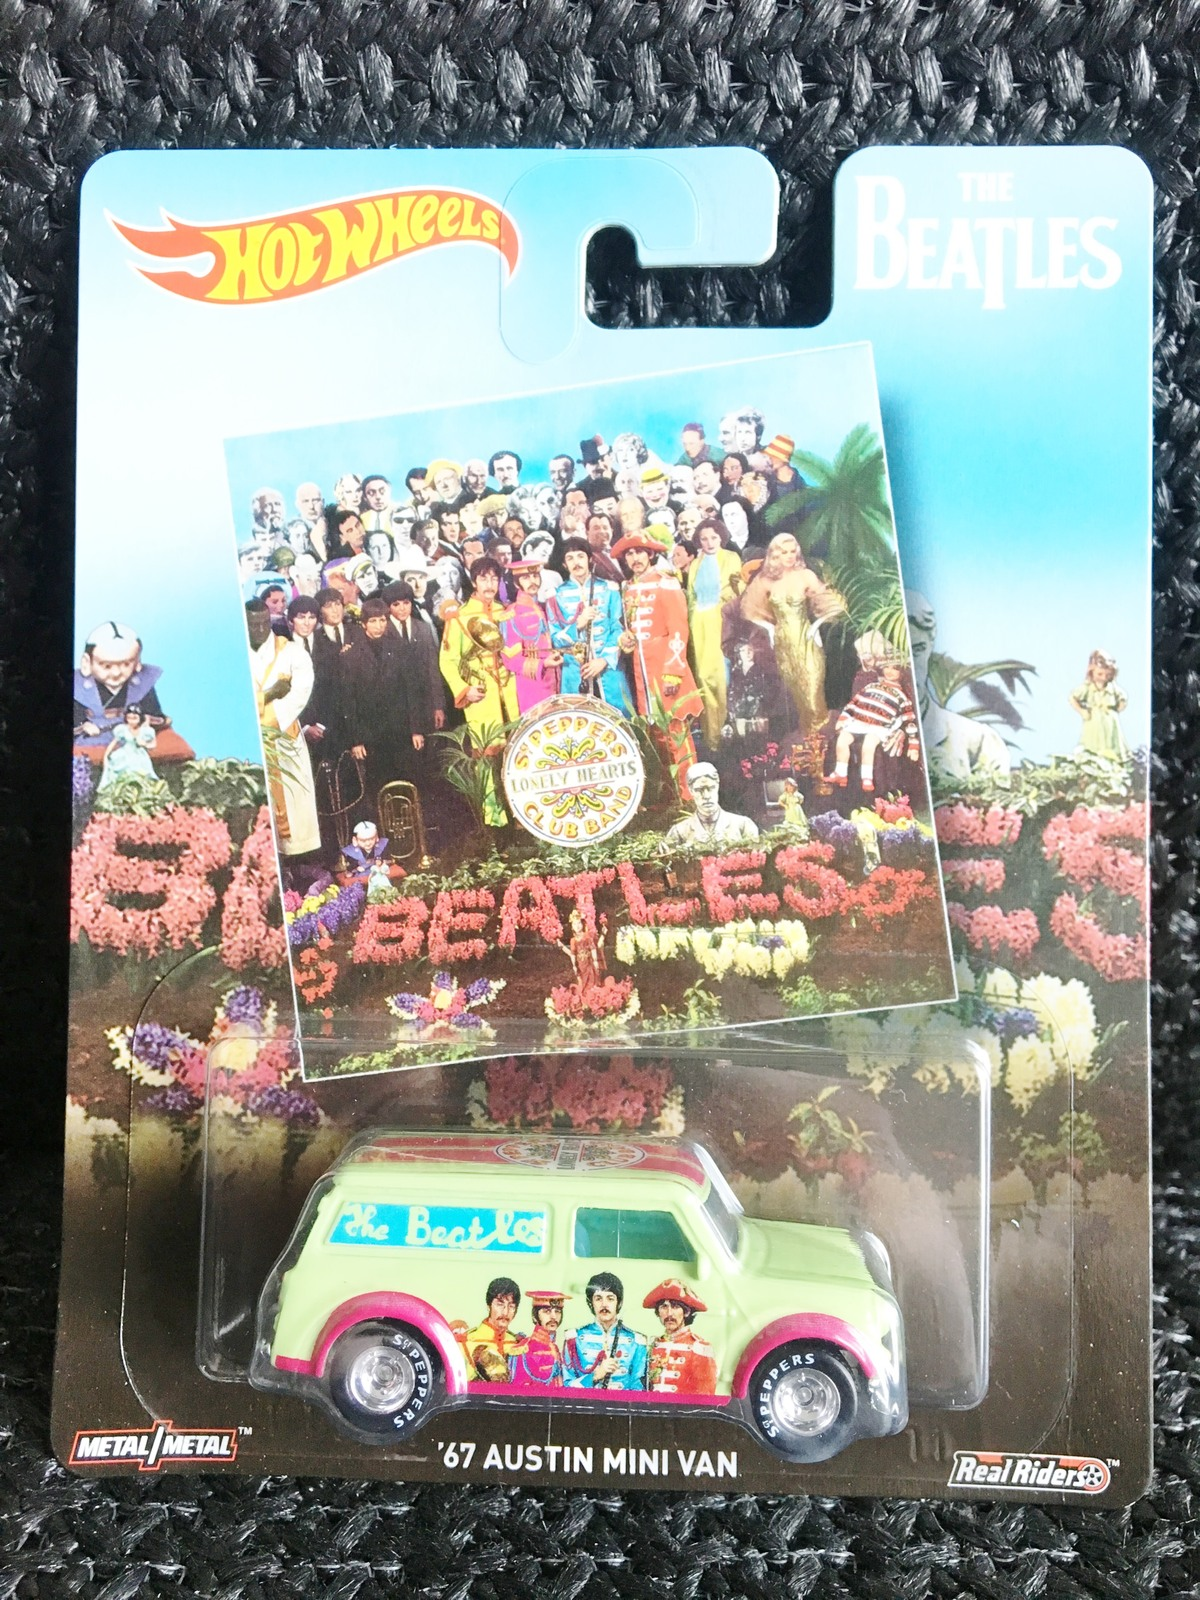 Hot wheels the beatles album sgt peppers lonely hearts club band 67 austin mini van 1